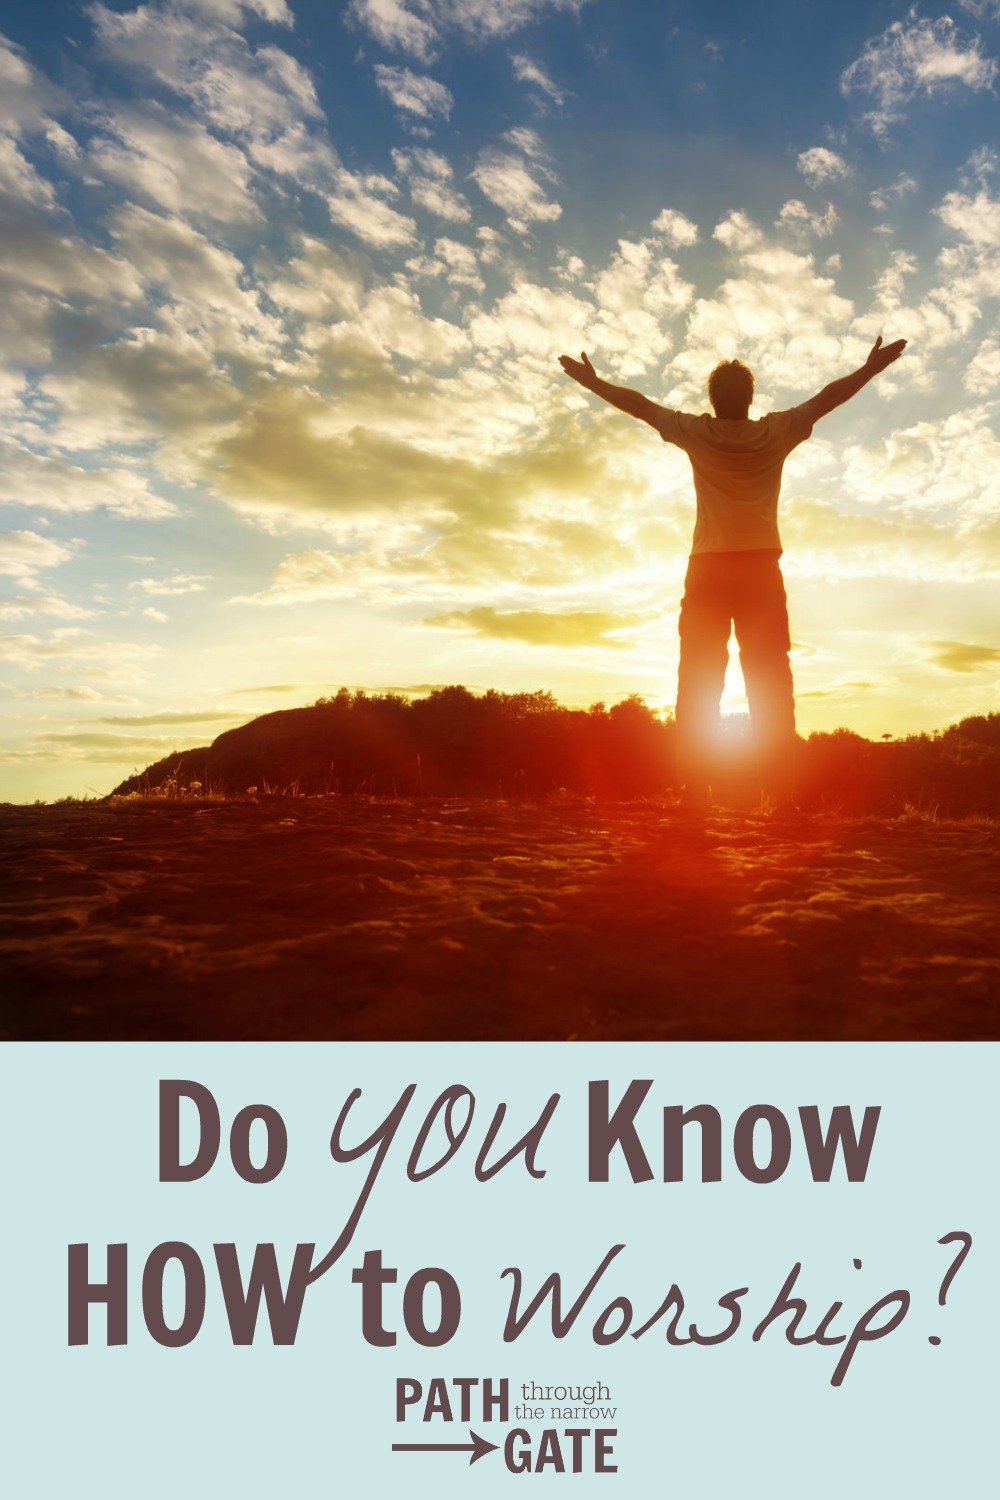 What comes to you mind when you think of worship? Do you even know how to worship?